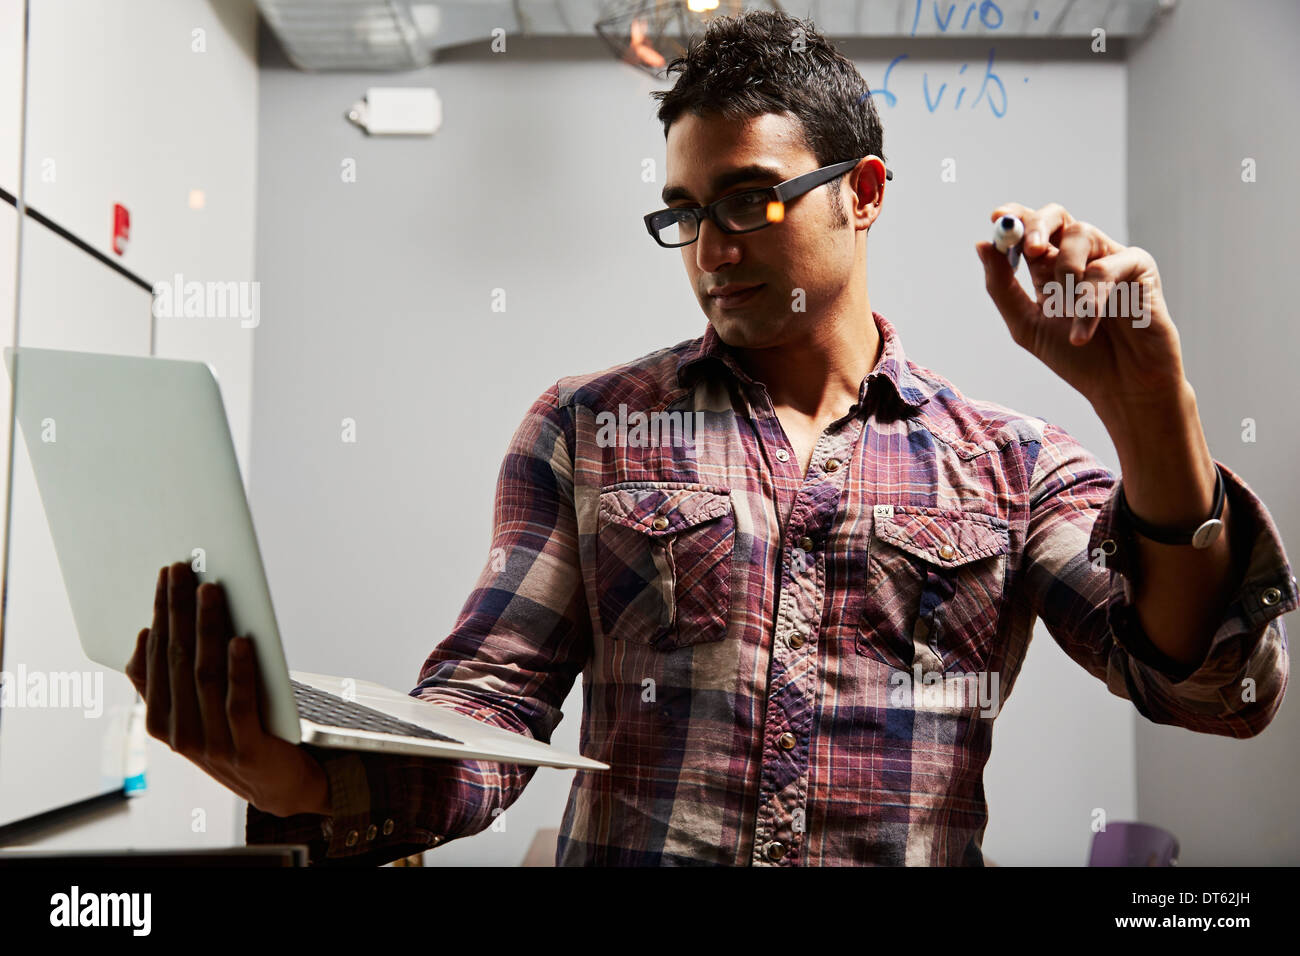 Man looking at laptop with pen in hand - Stock Image